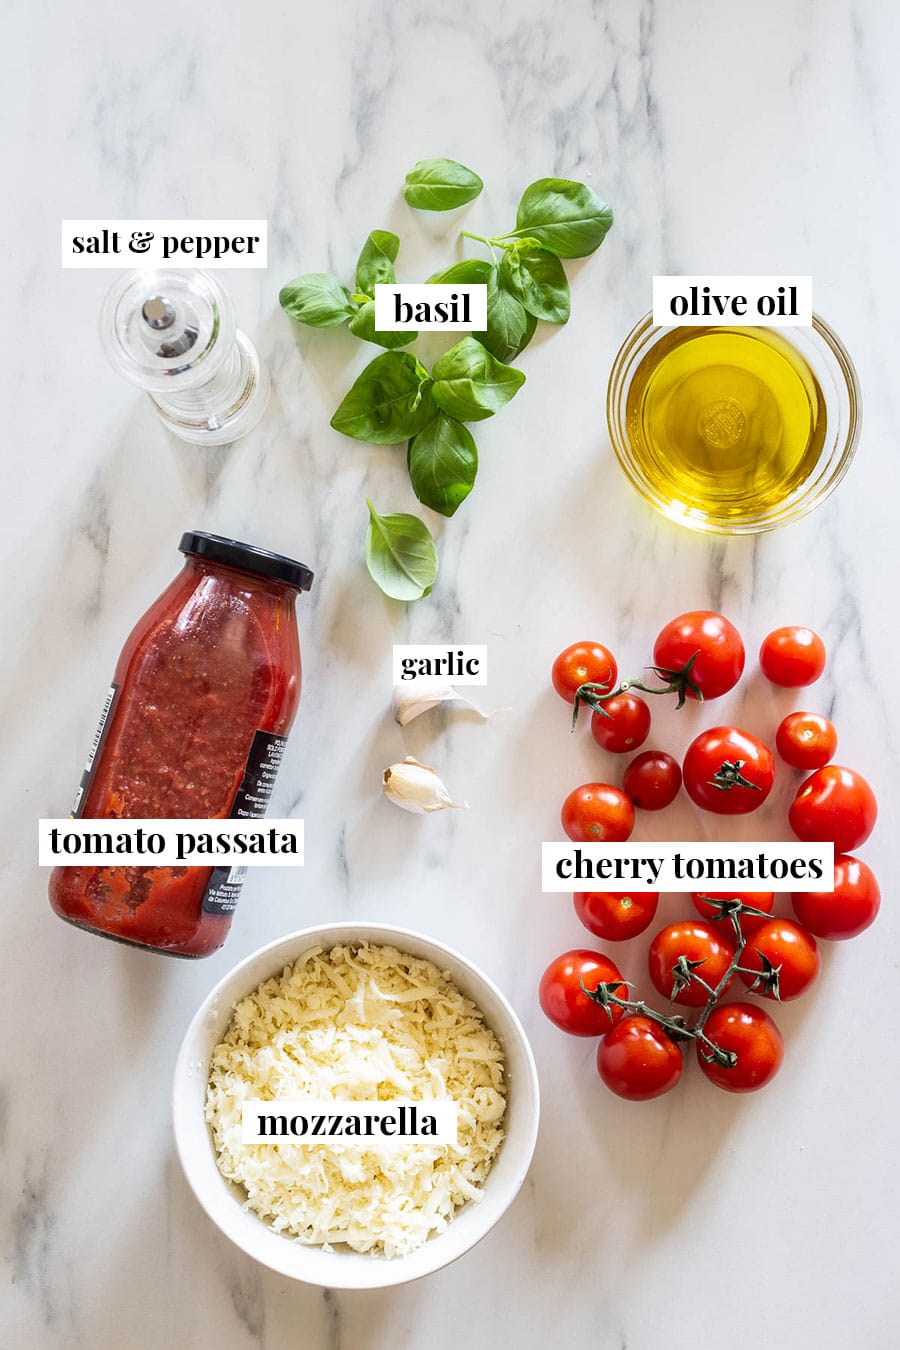 Ingredients for sauce, labeled.